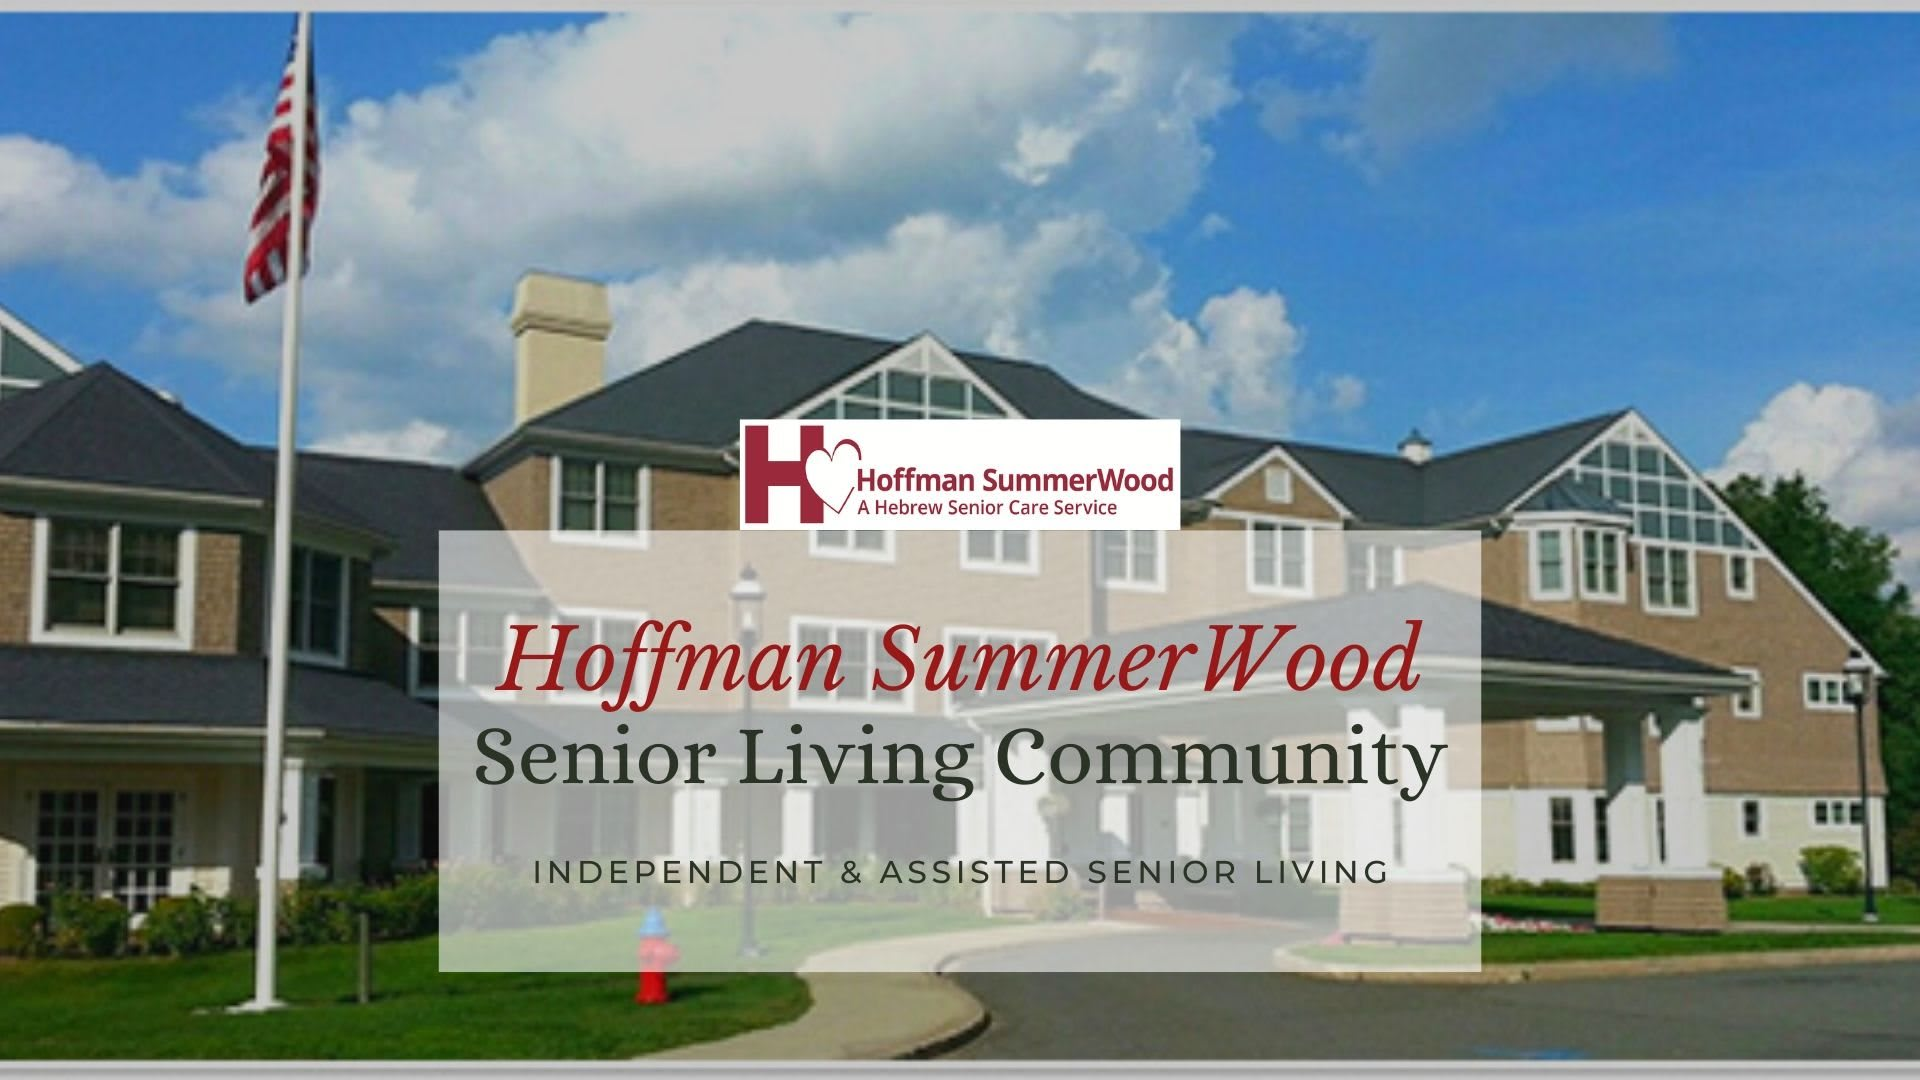 Photo 1 of Hoffman Summerwood Community